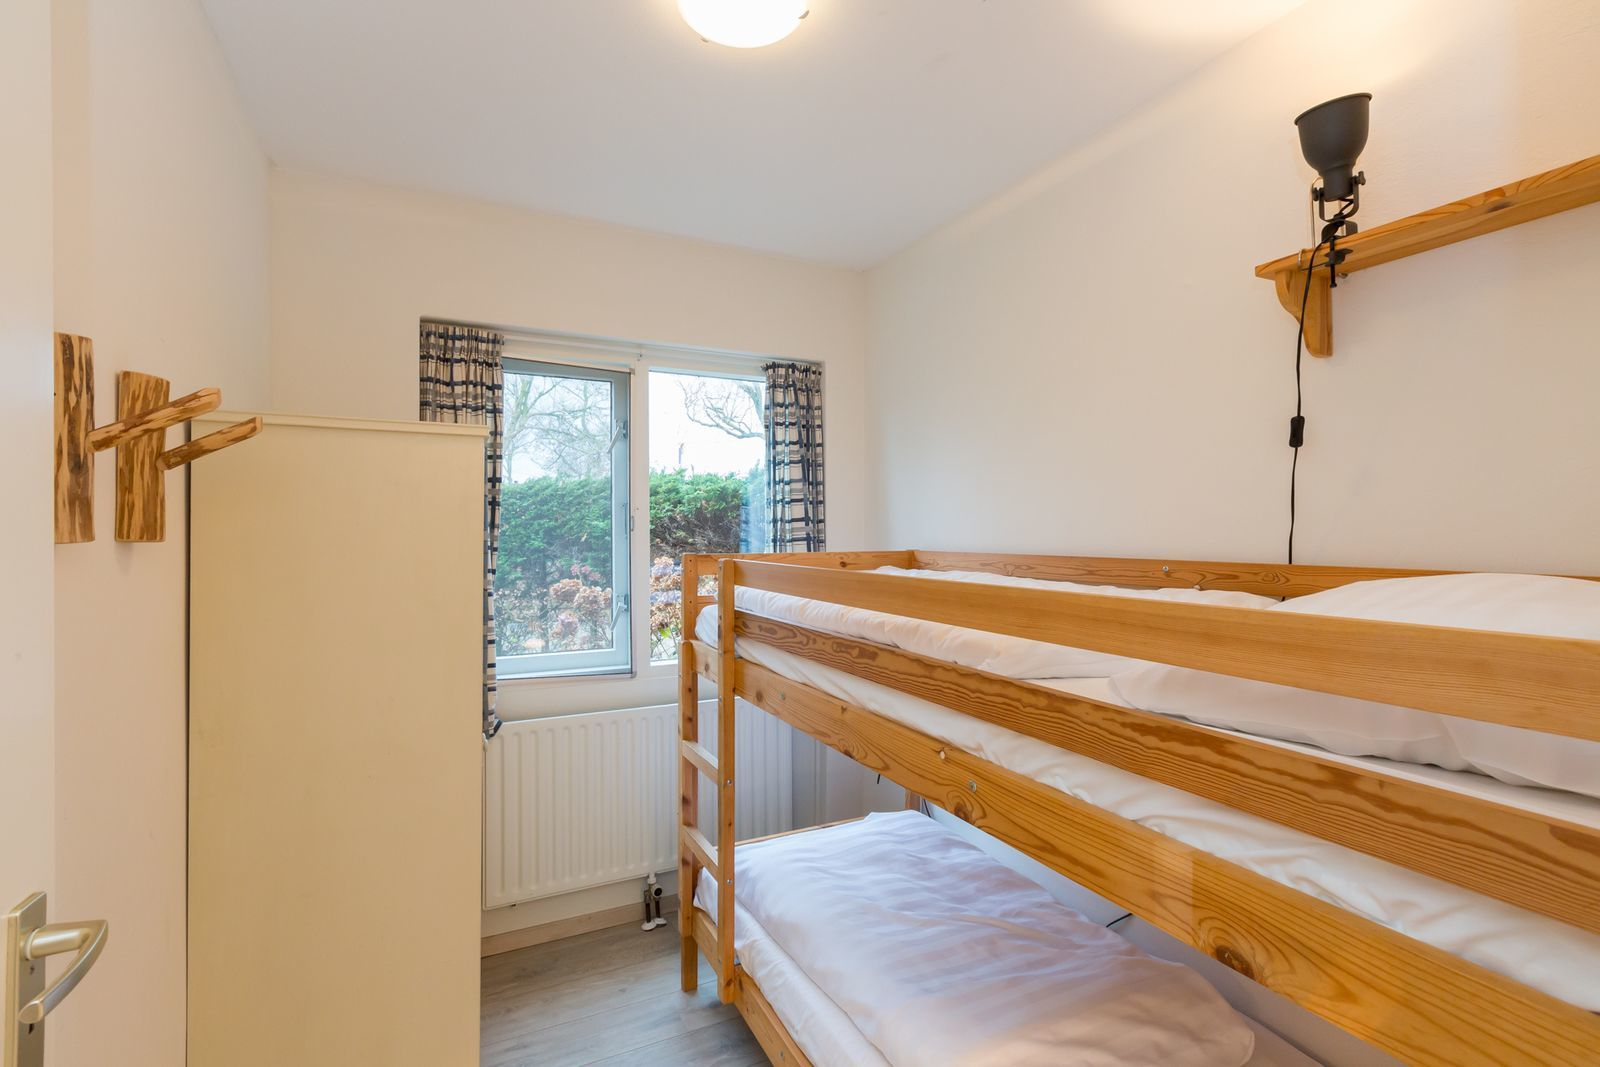 Appartement - Wulkpad 23 | Zoutelande